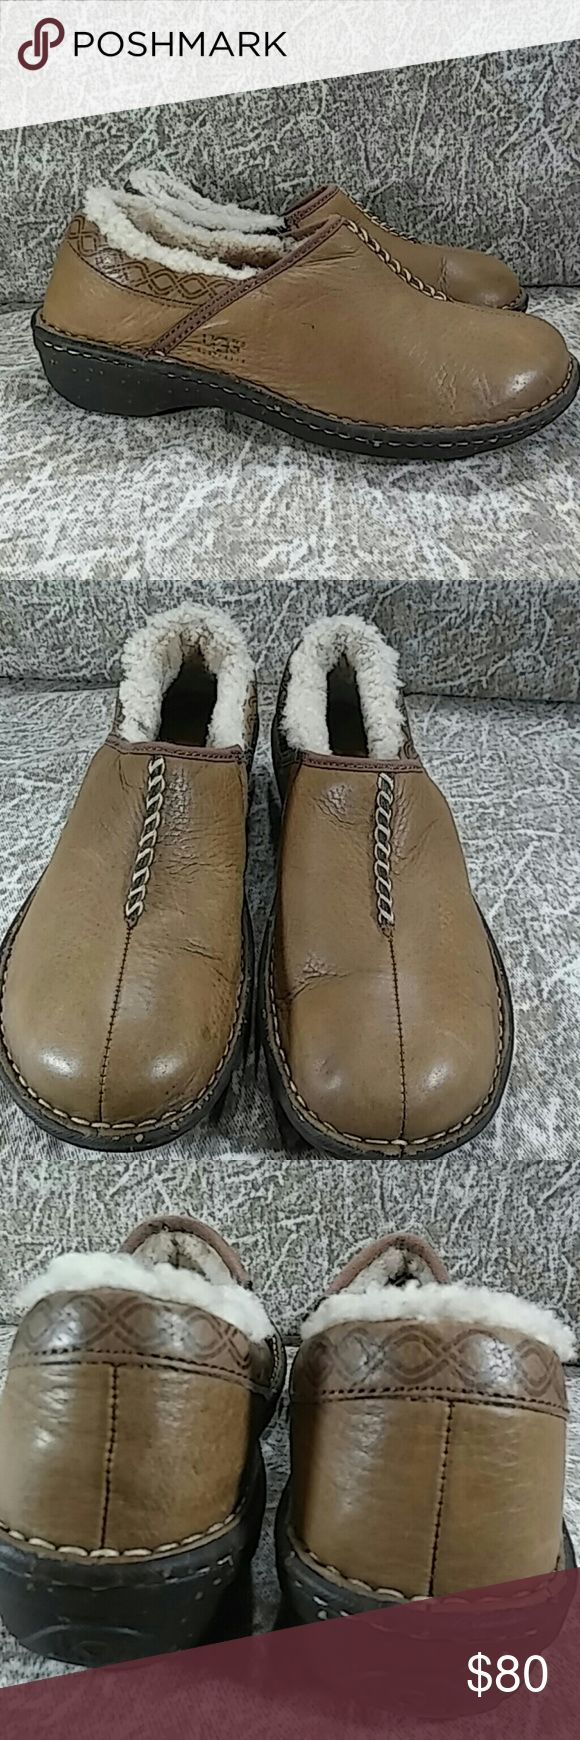 Size 8 Ugg mules Size 8 women's mules in extremely good used condition UGG Shoes Mules & Clogs